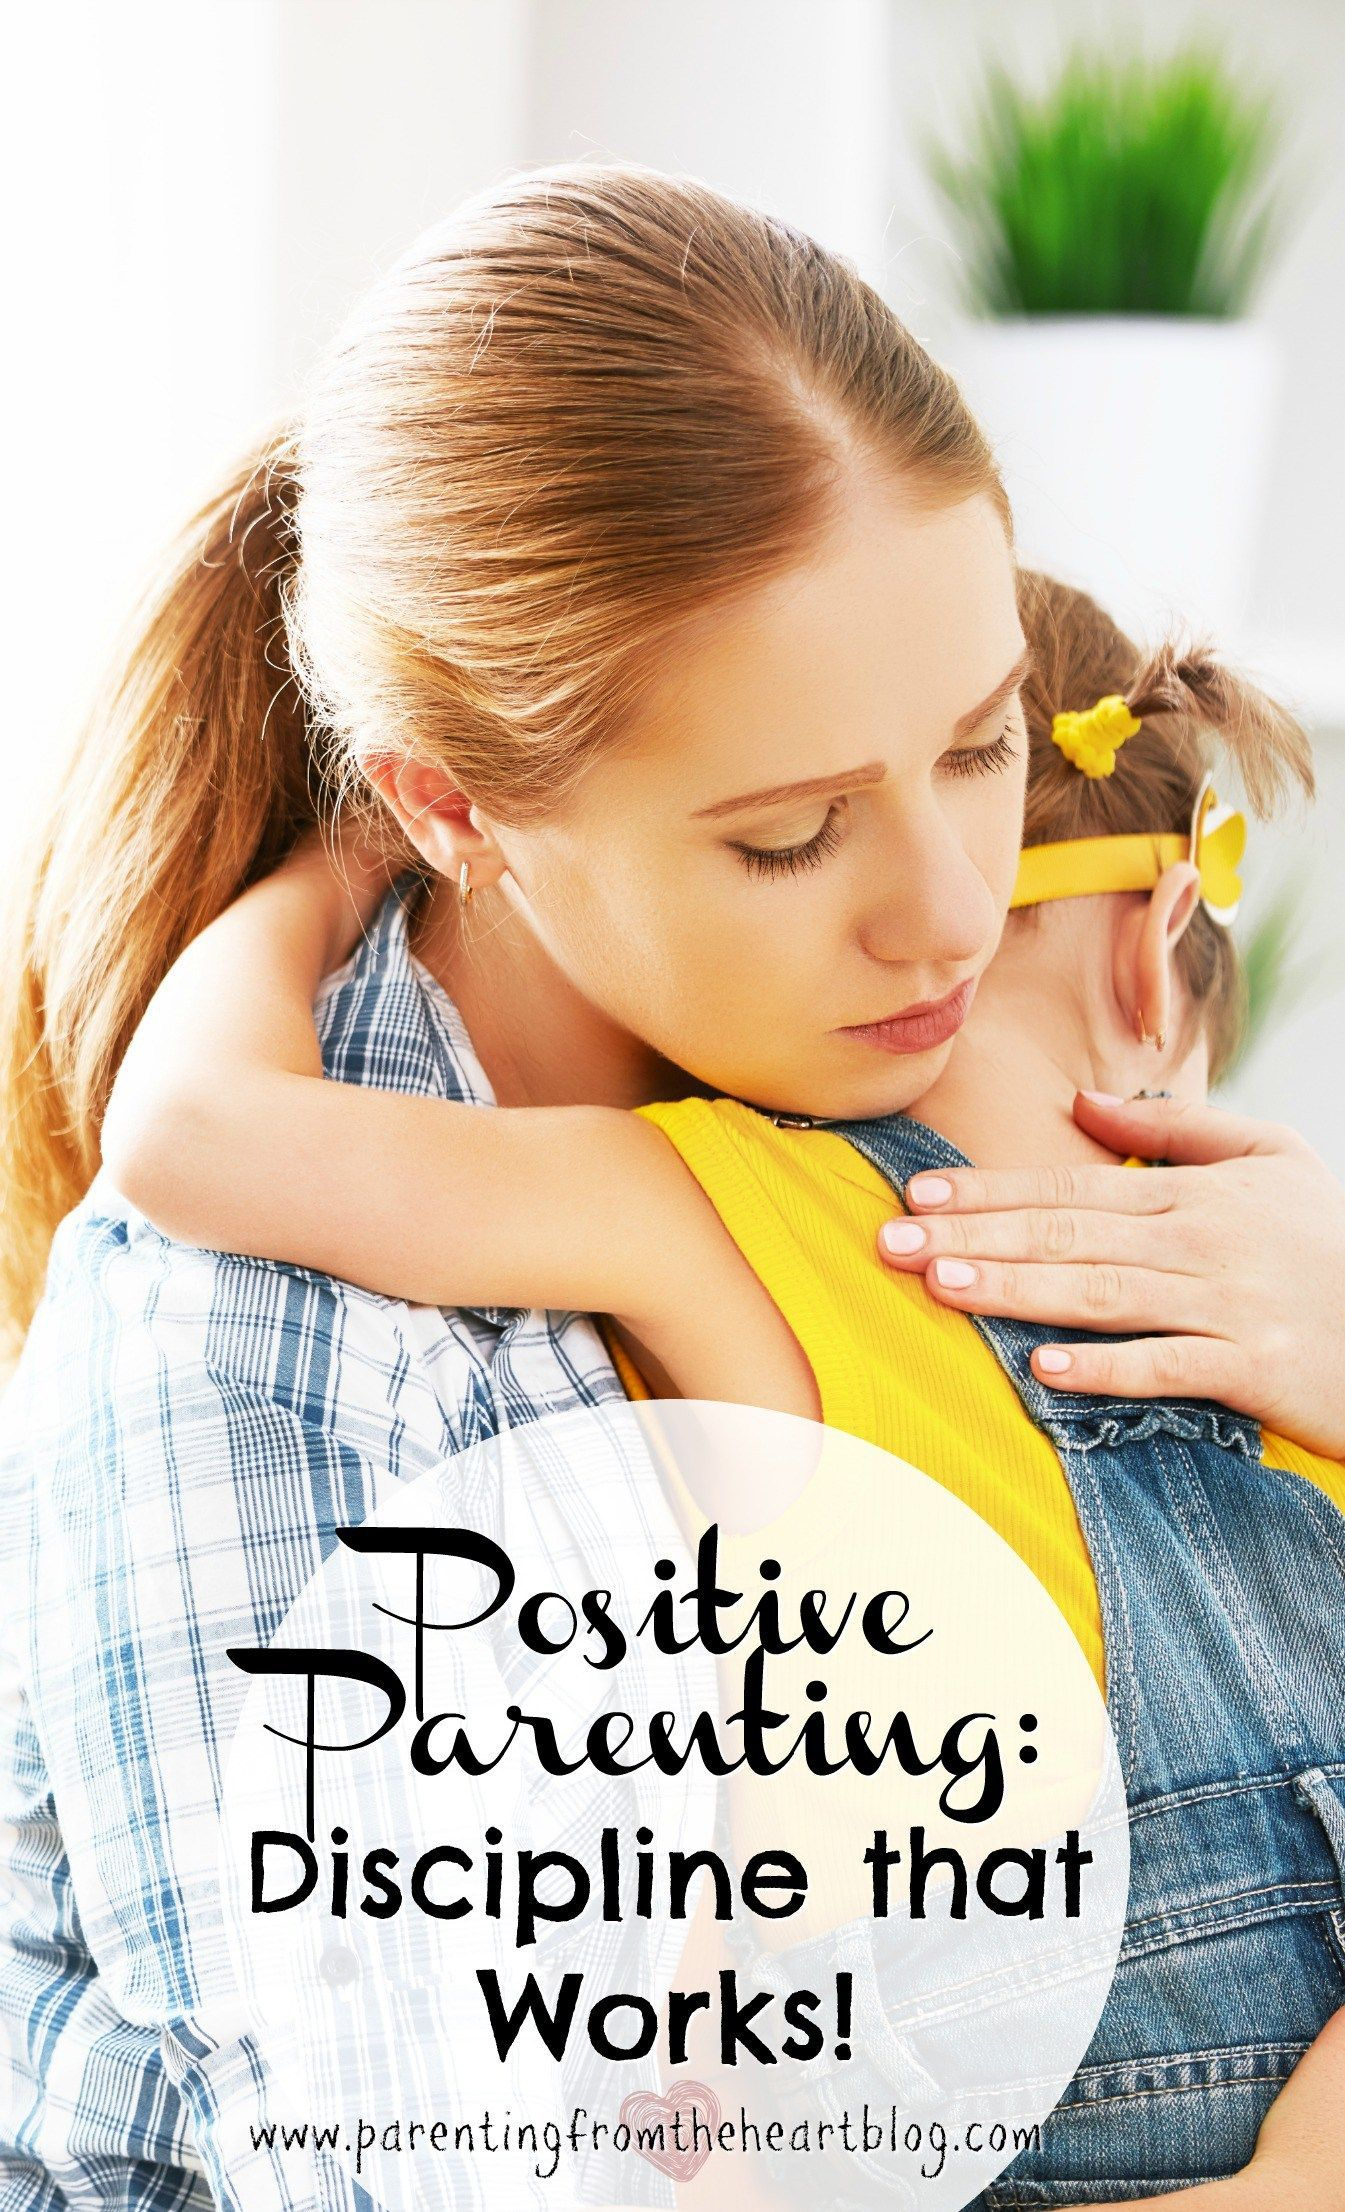 Resources On How To Parent Effectively Without Punishment